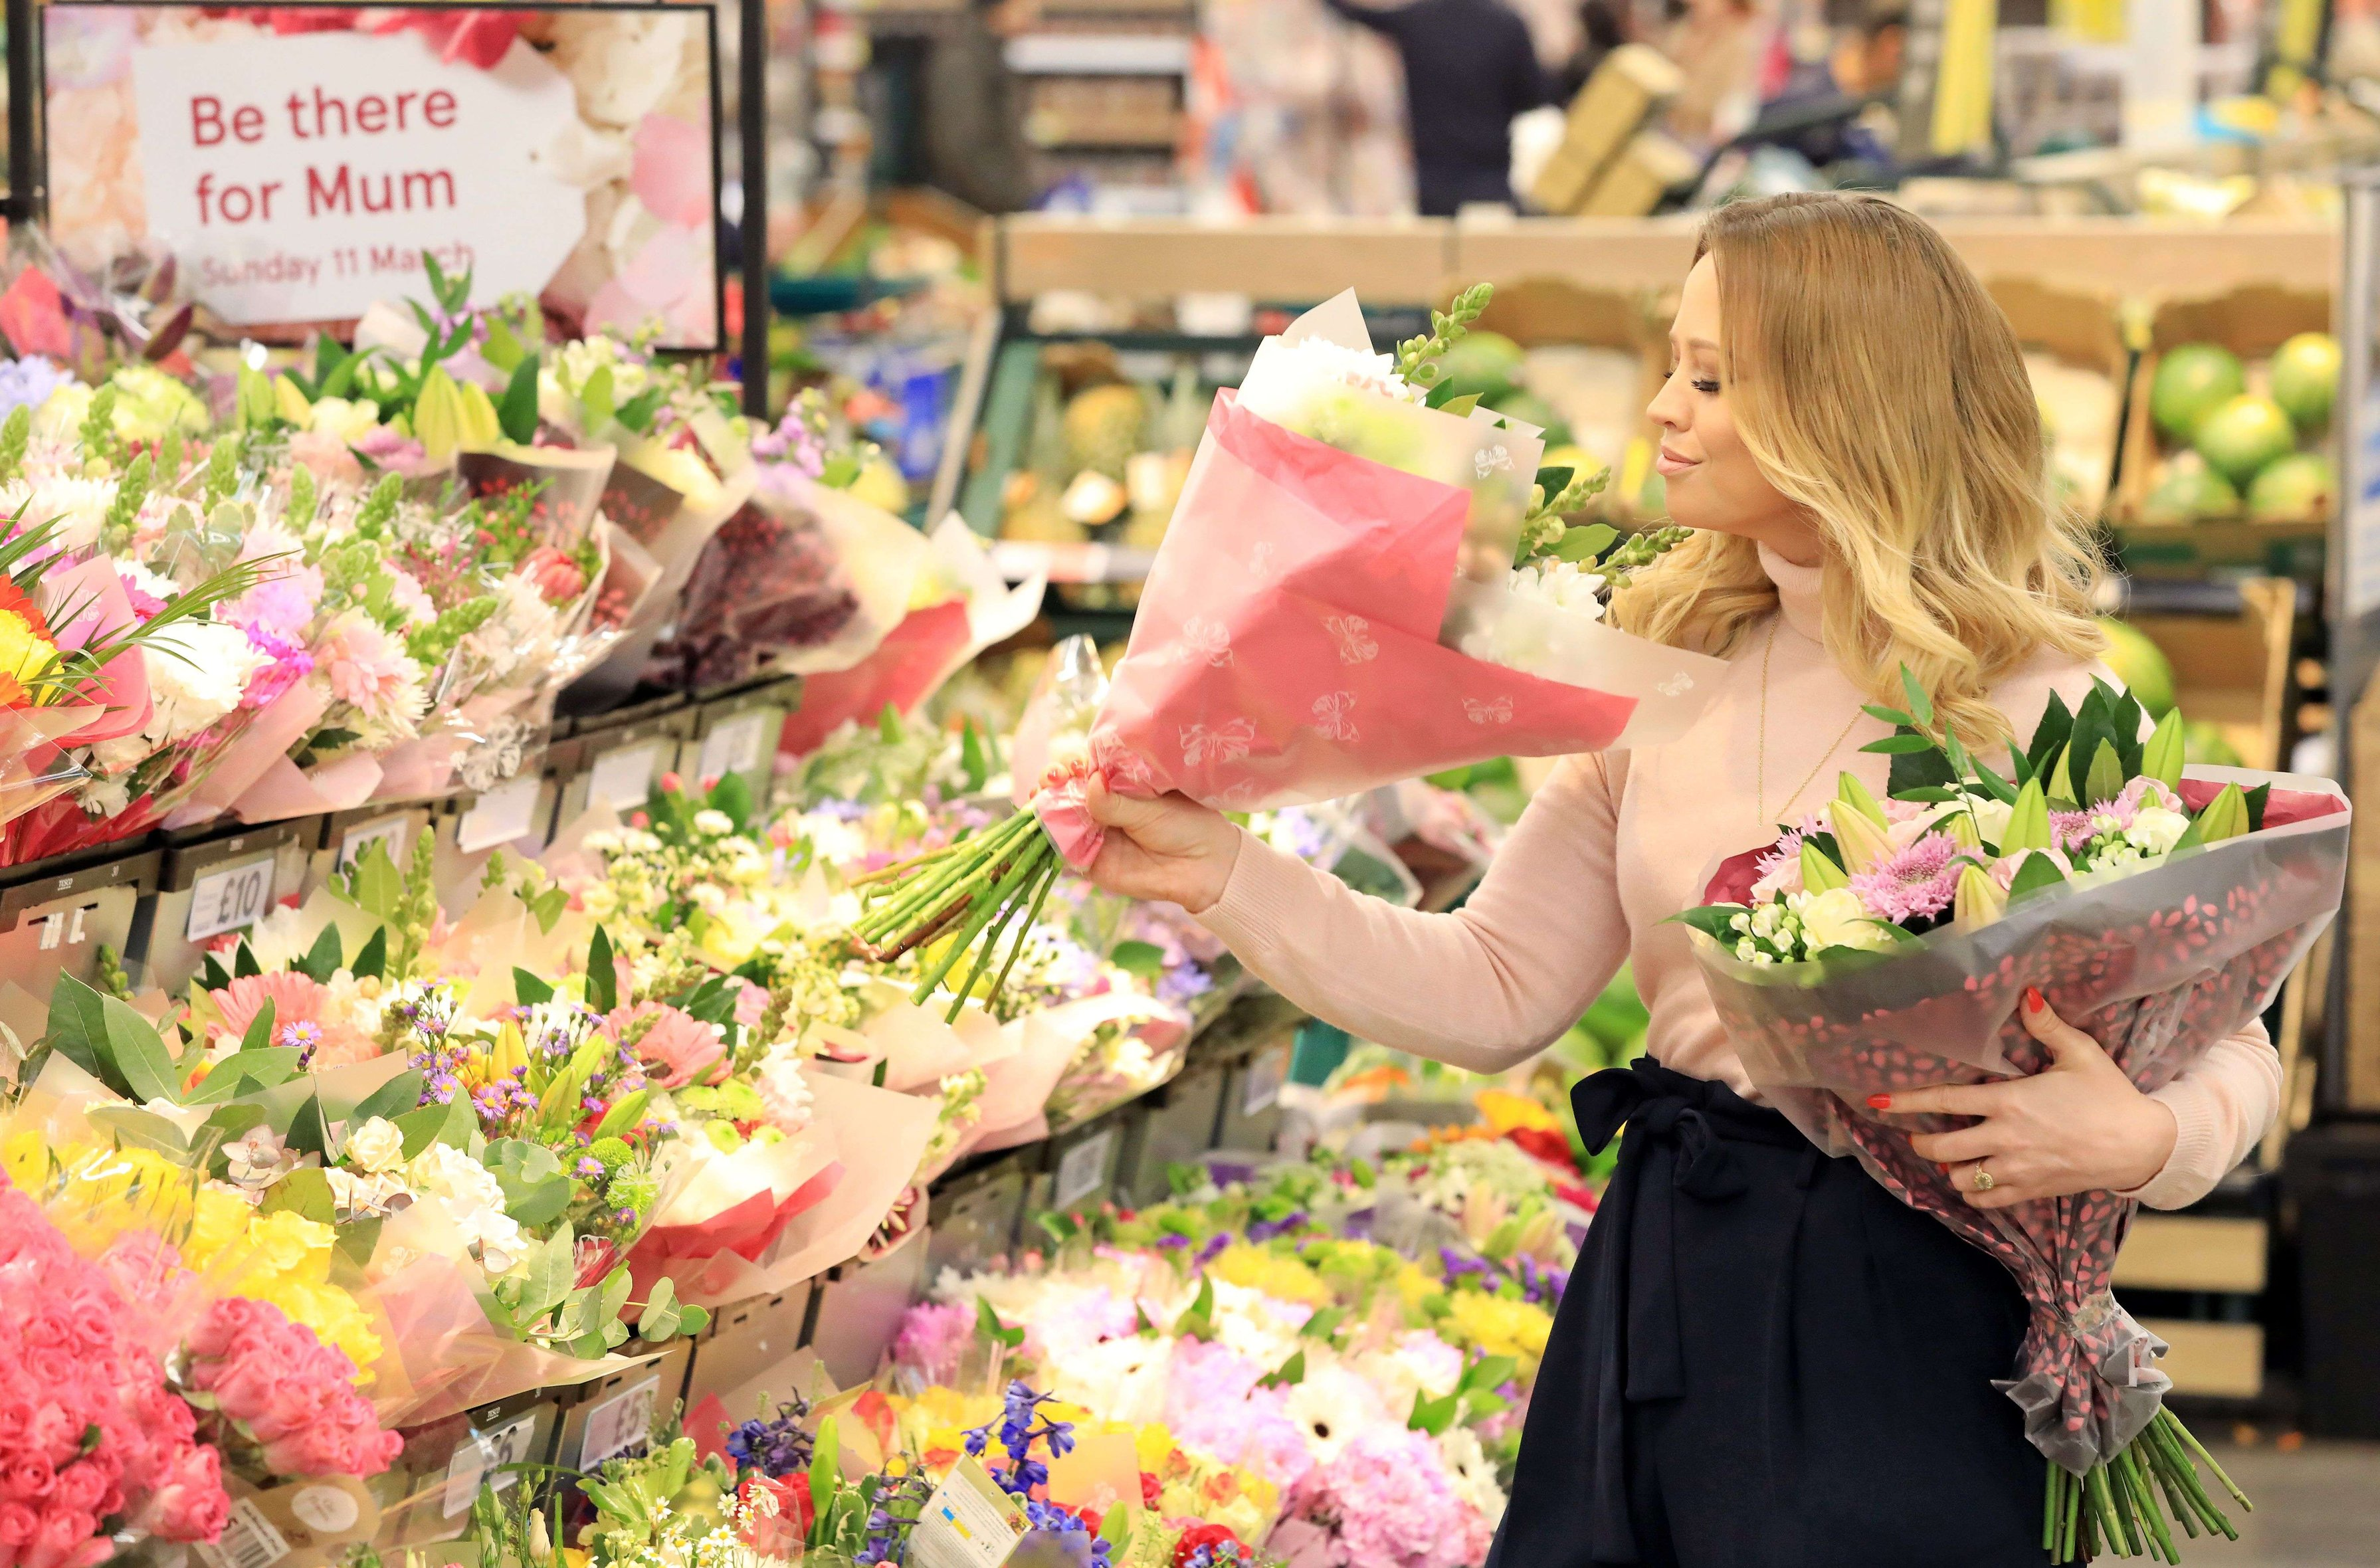 Keywords: Tesco, Mother, flowers, pink